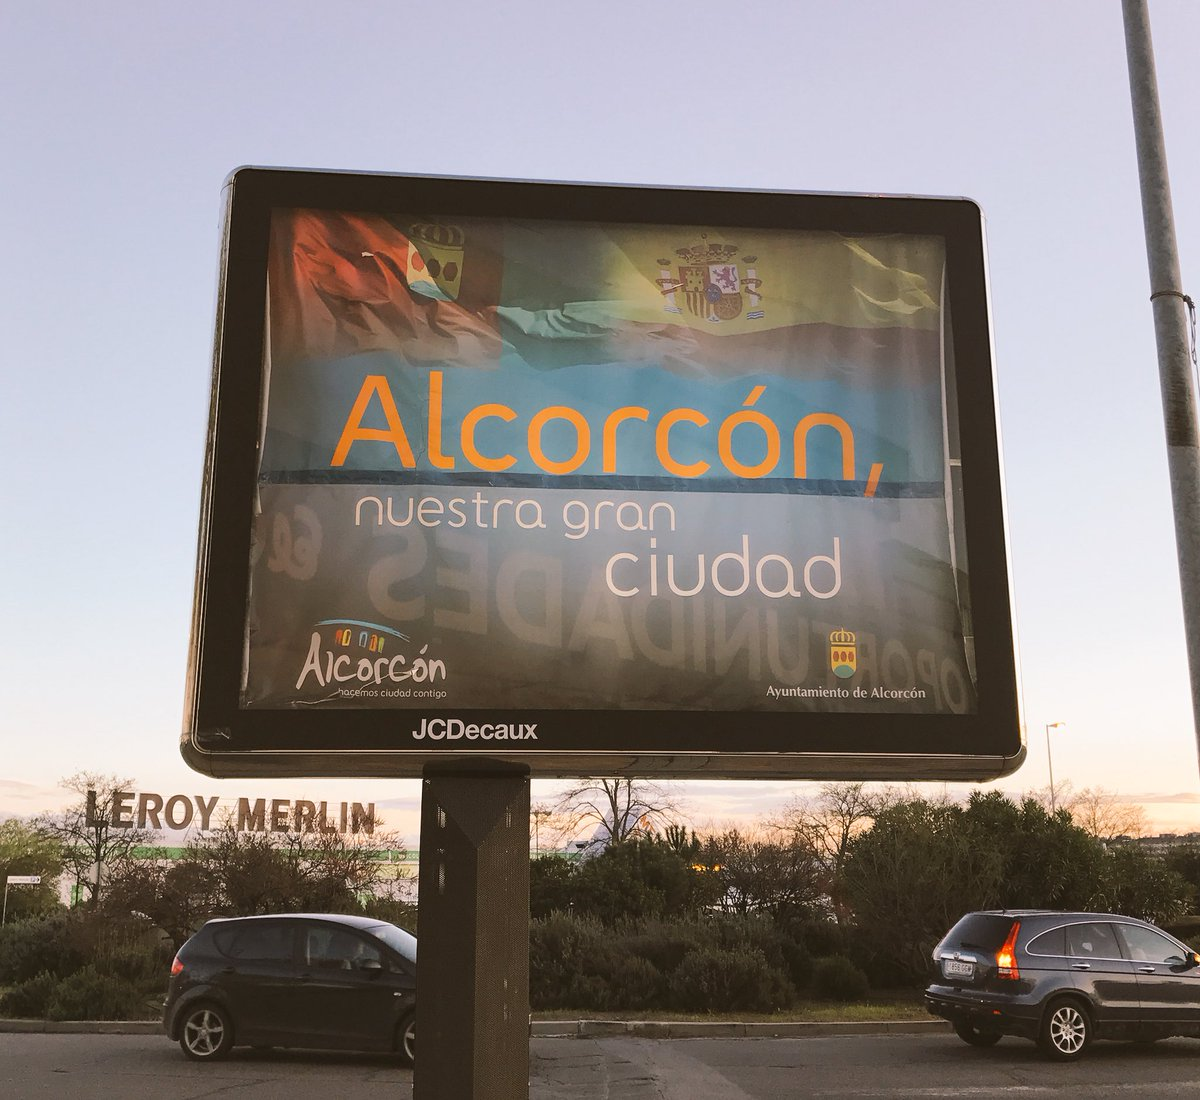 Make Alcorcón Great Again https://t.co/Nxubd1cAtX